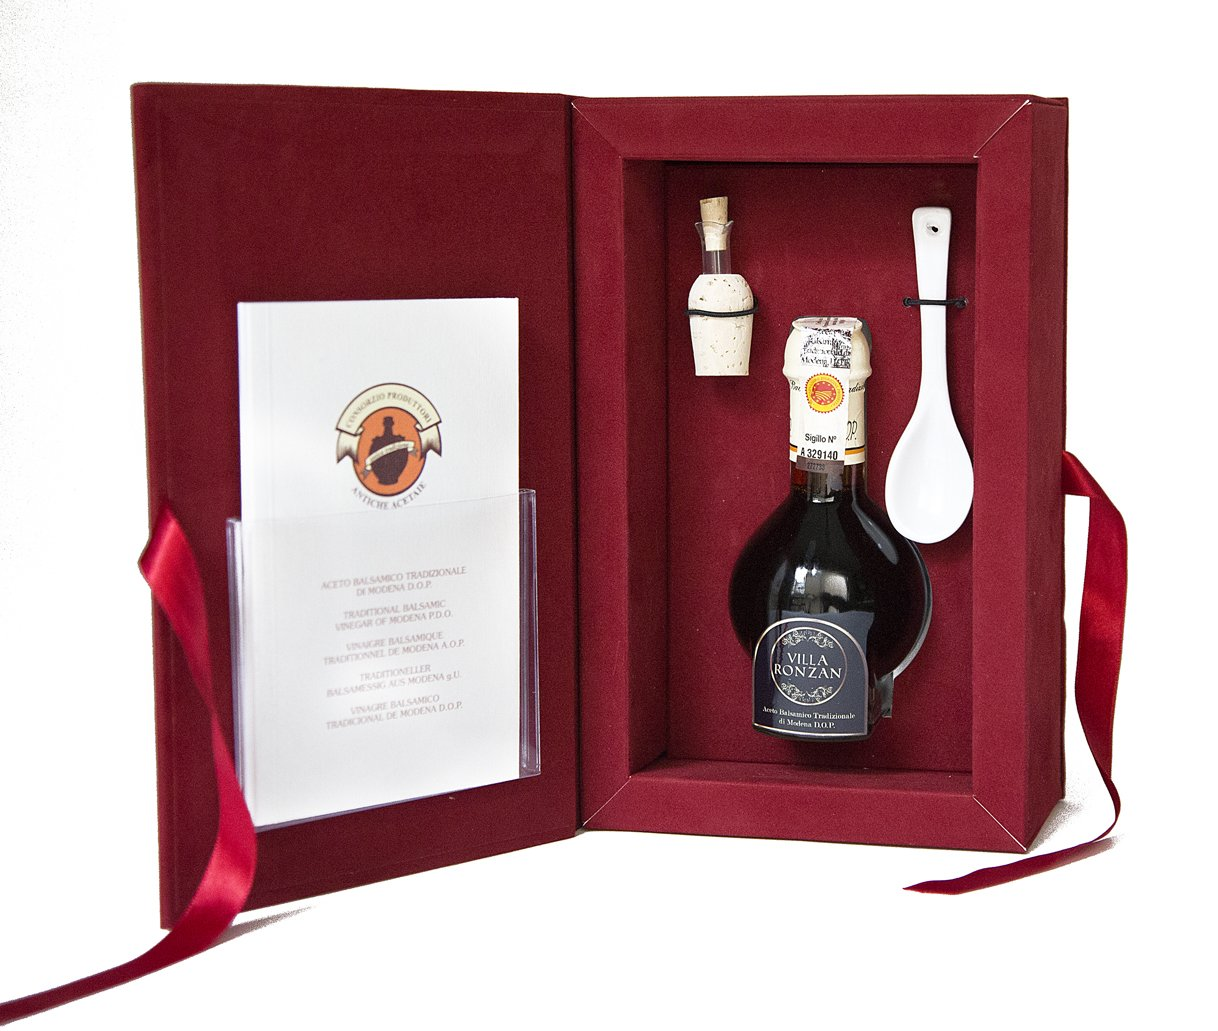 Balsamic vinegar gift set. Aceto balsamico tradizionale of Modena. Aged 12 years. DOP certified from Villa Ronzan. On Sale Now. by Villa Ronzan